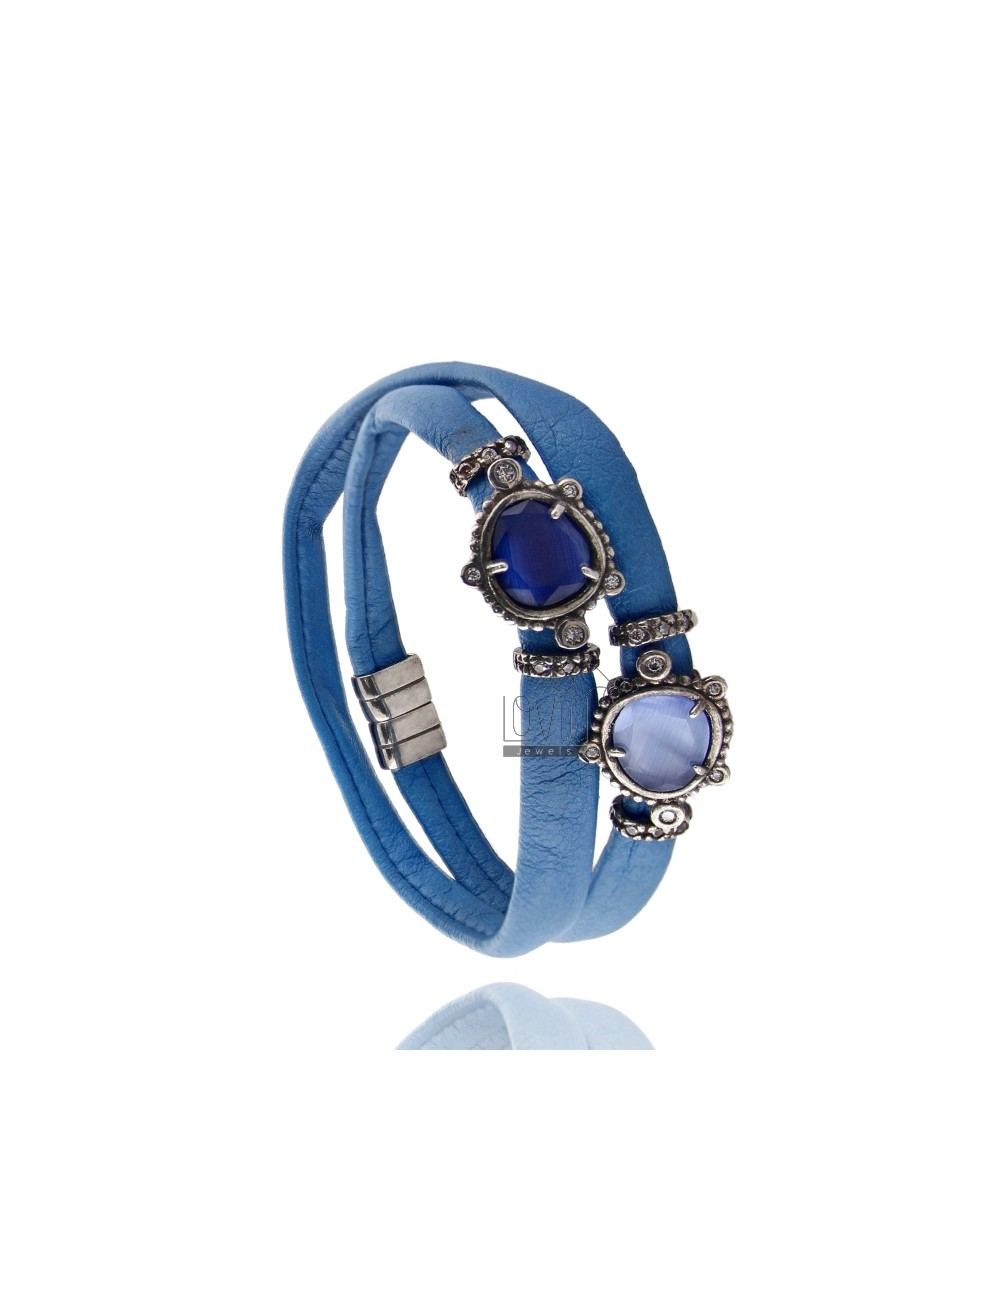 DOUBLE BRACELET AROUND LEATHER ELECTRIC BLUE, CENTRAL WITH STONES HYDROTHERMAL SASSO, ZIRCONIA AND MAGNETIC CLOSURE IN ANCIENT A